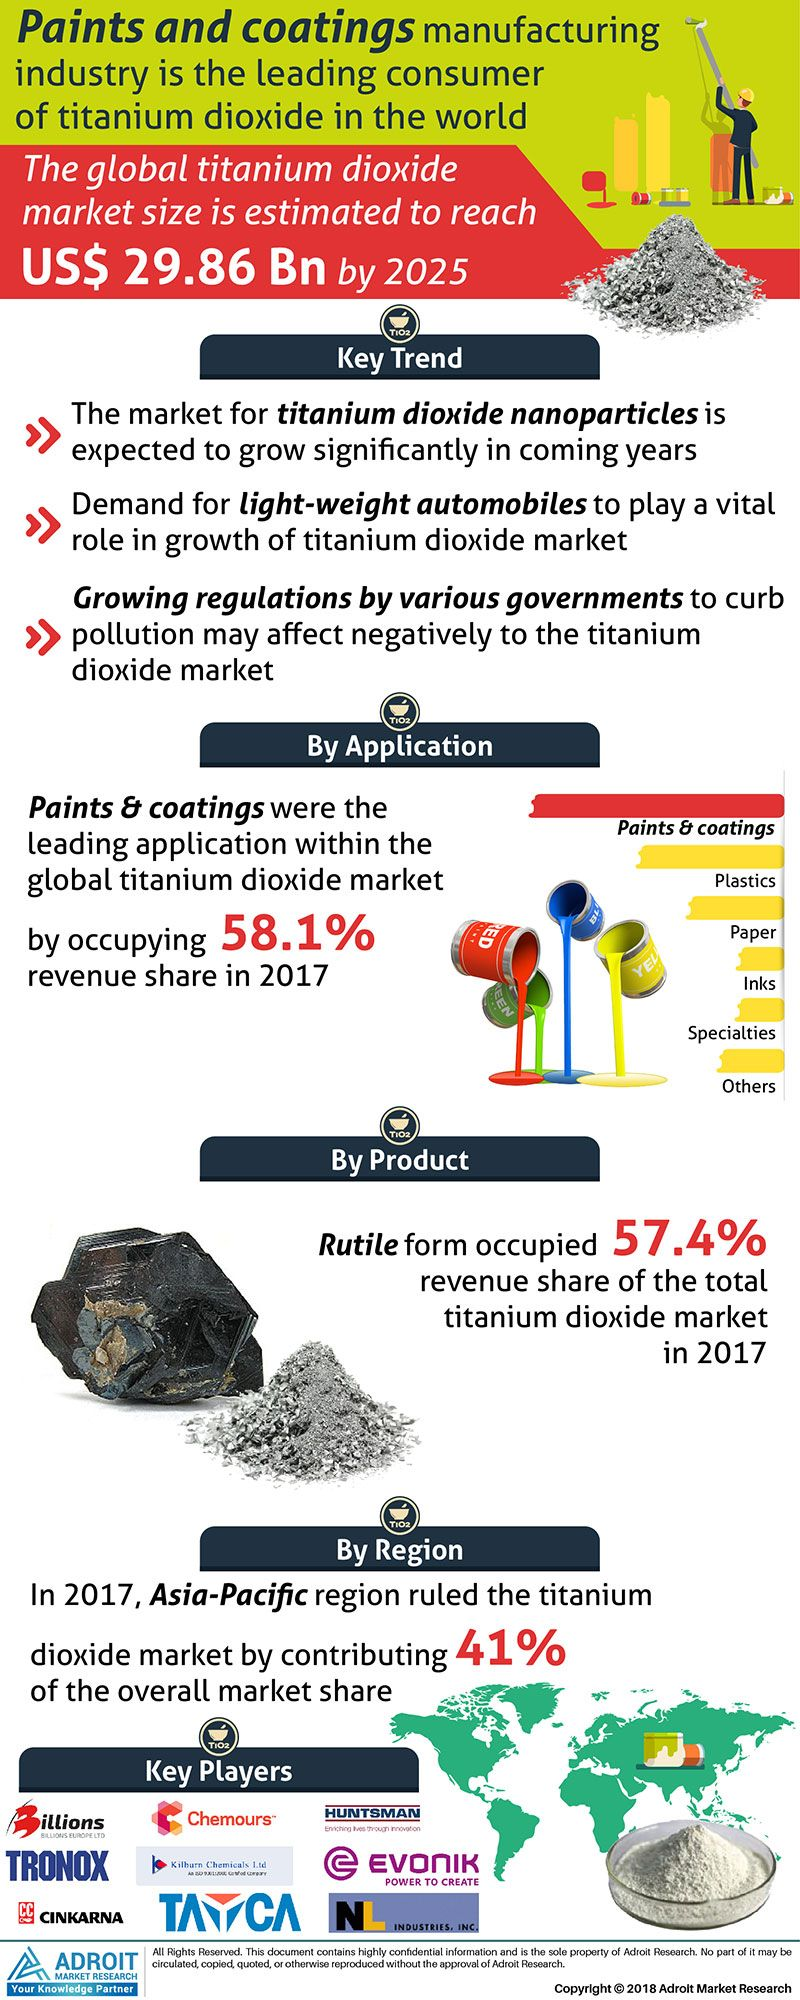 Titanium Dioxide Market Analysis Insights, Competitive